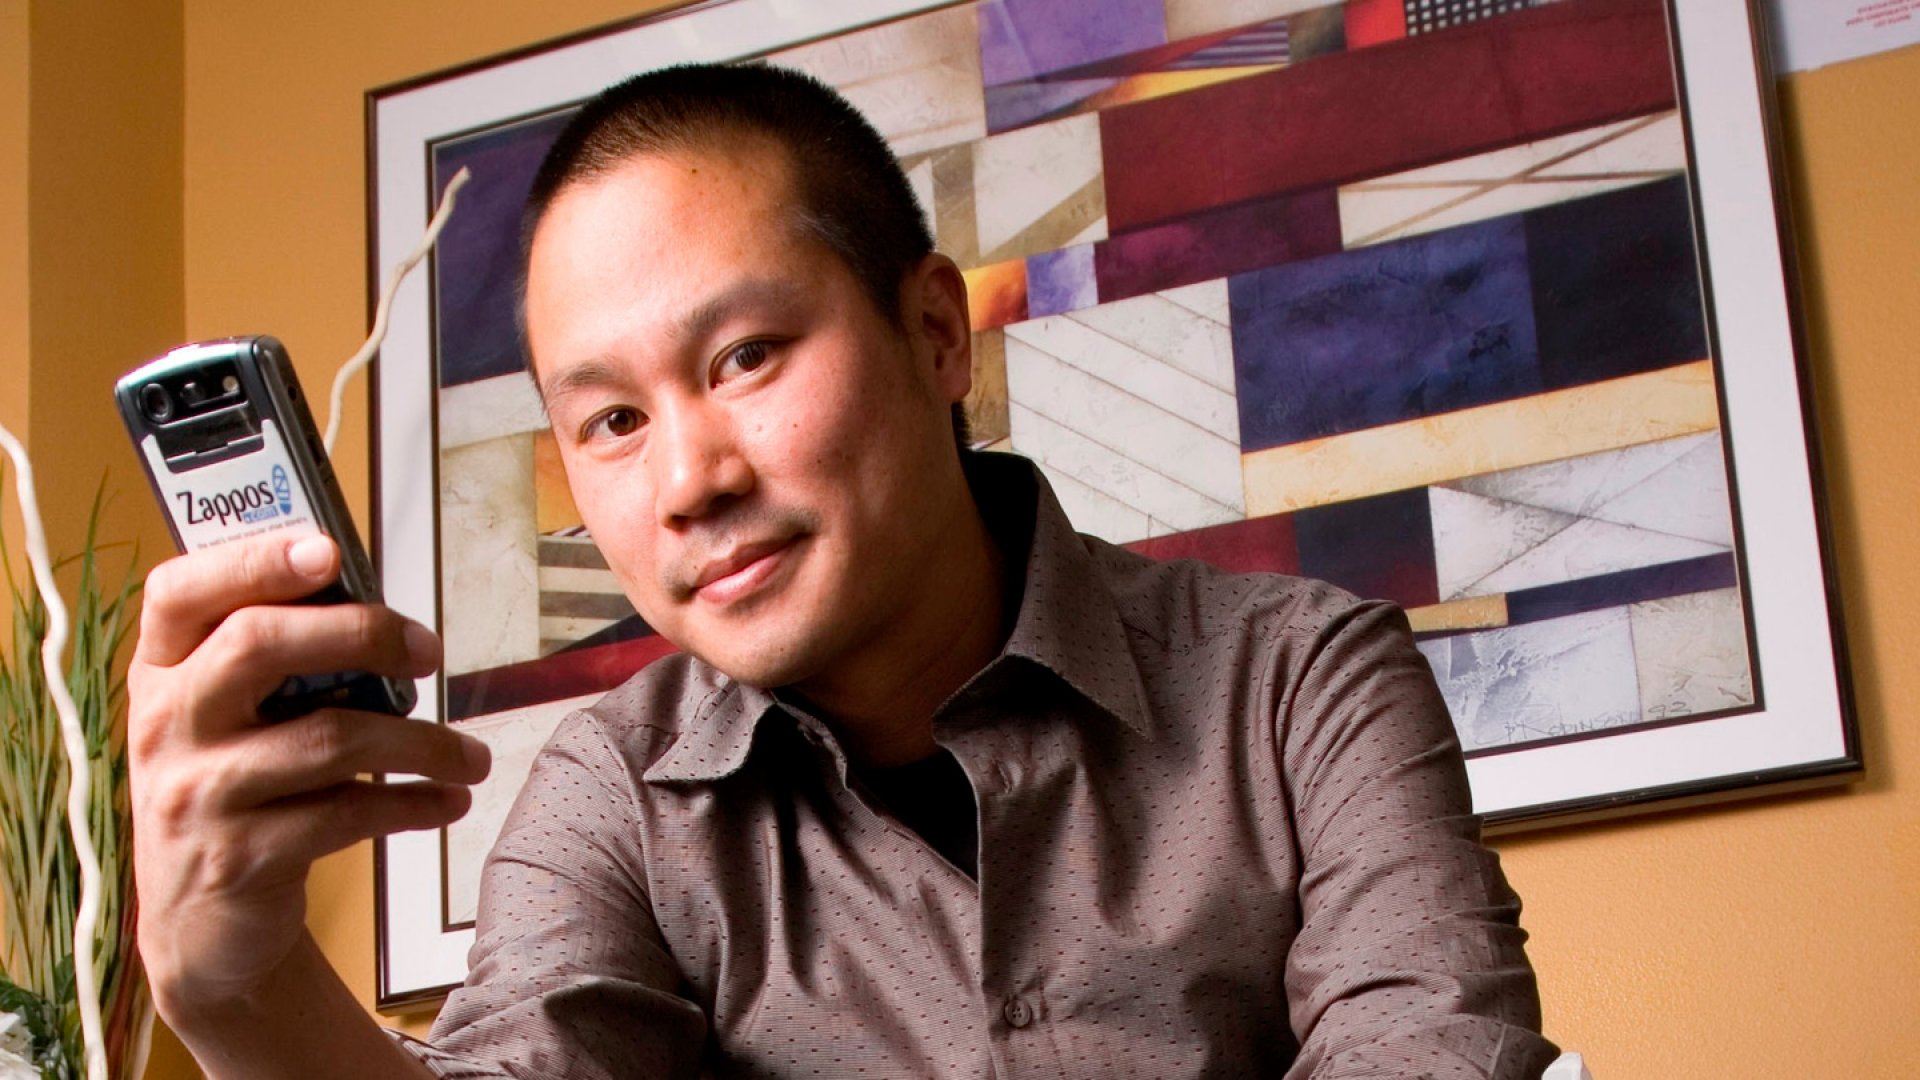 Tony Hsieh's Rule for Success: Maximize Serendipity